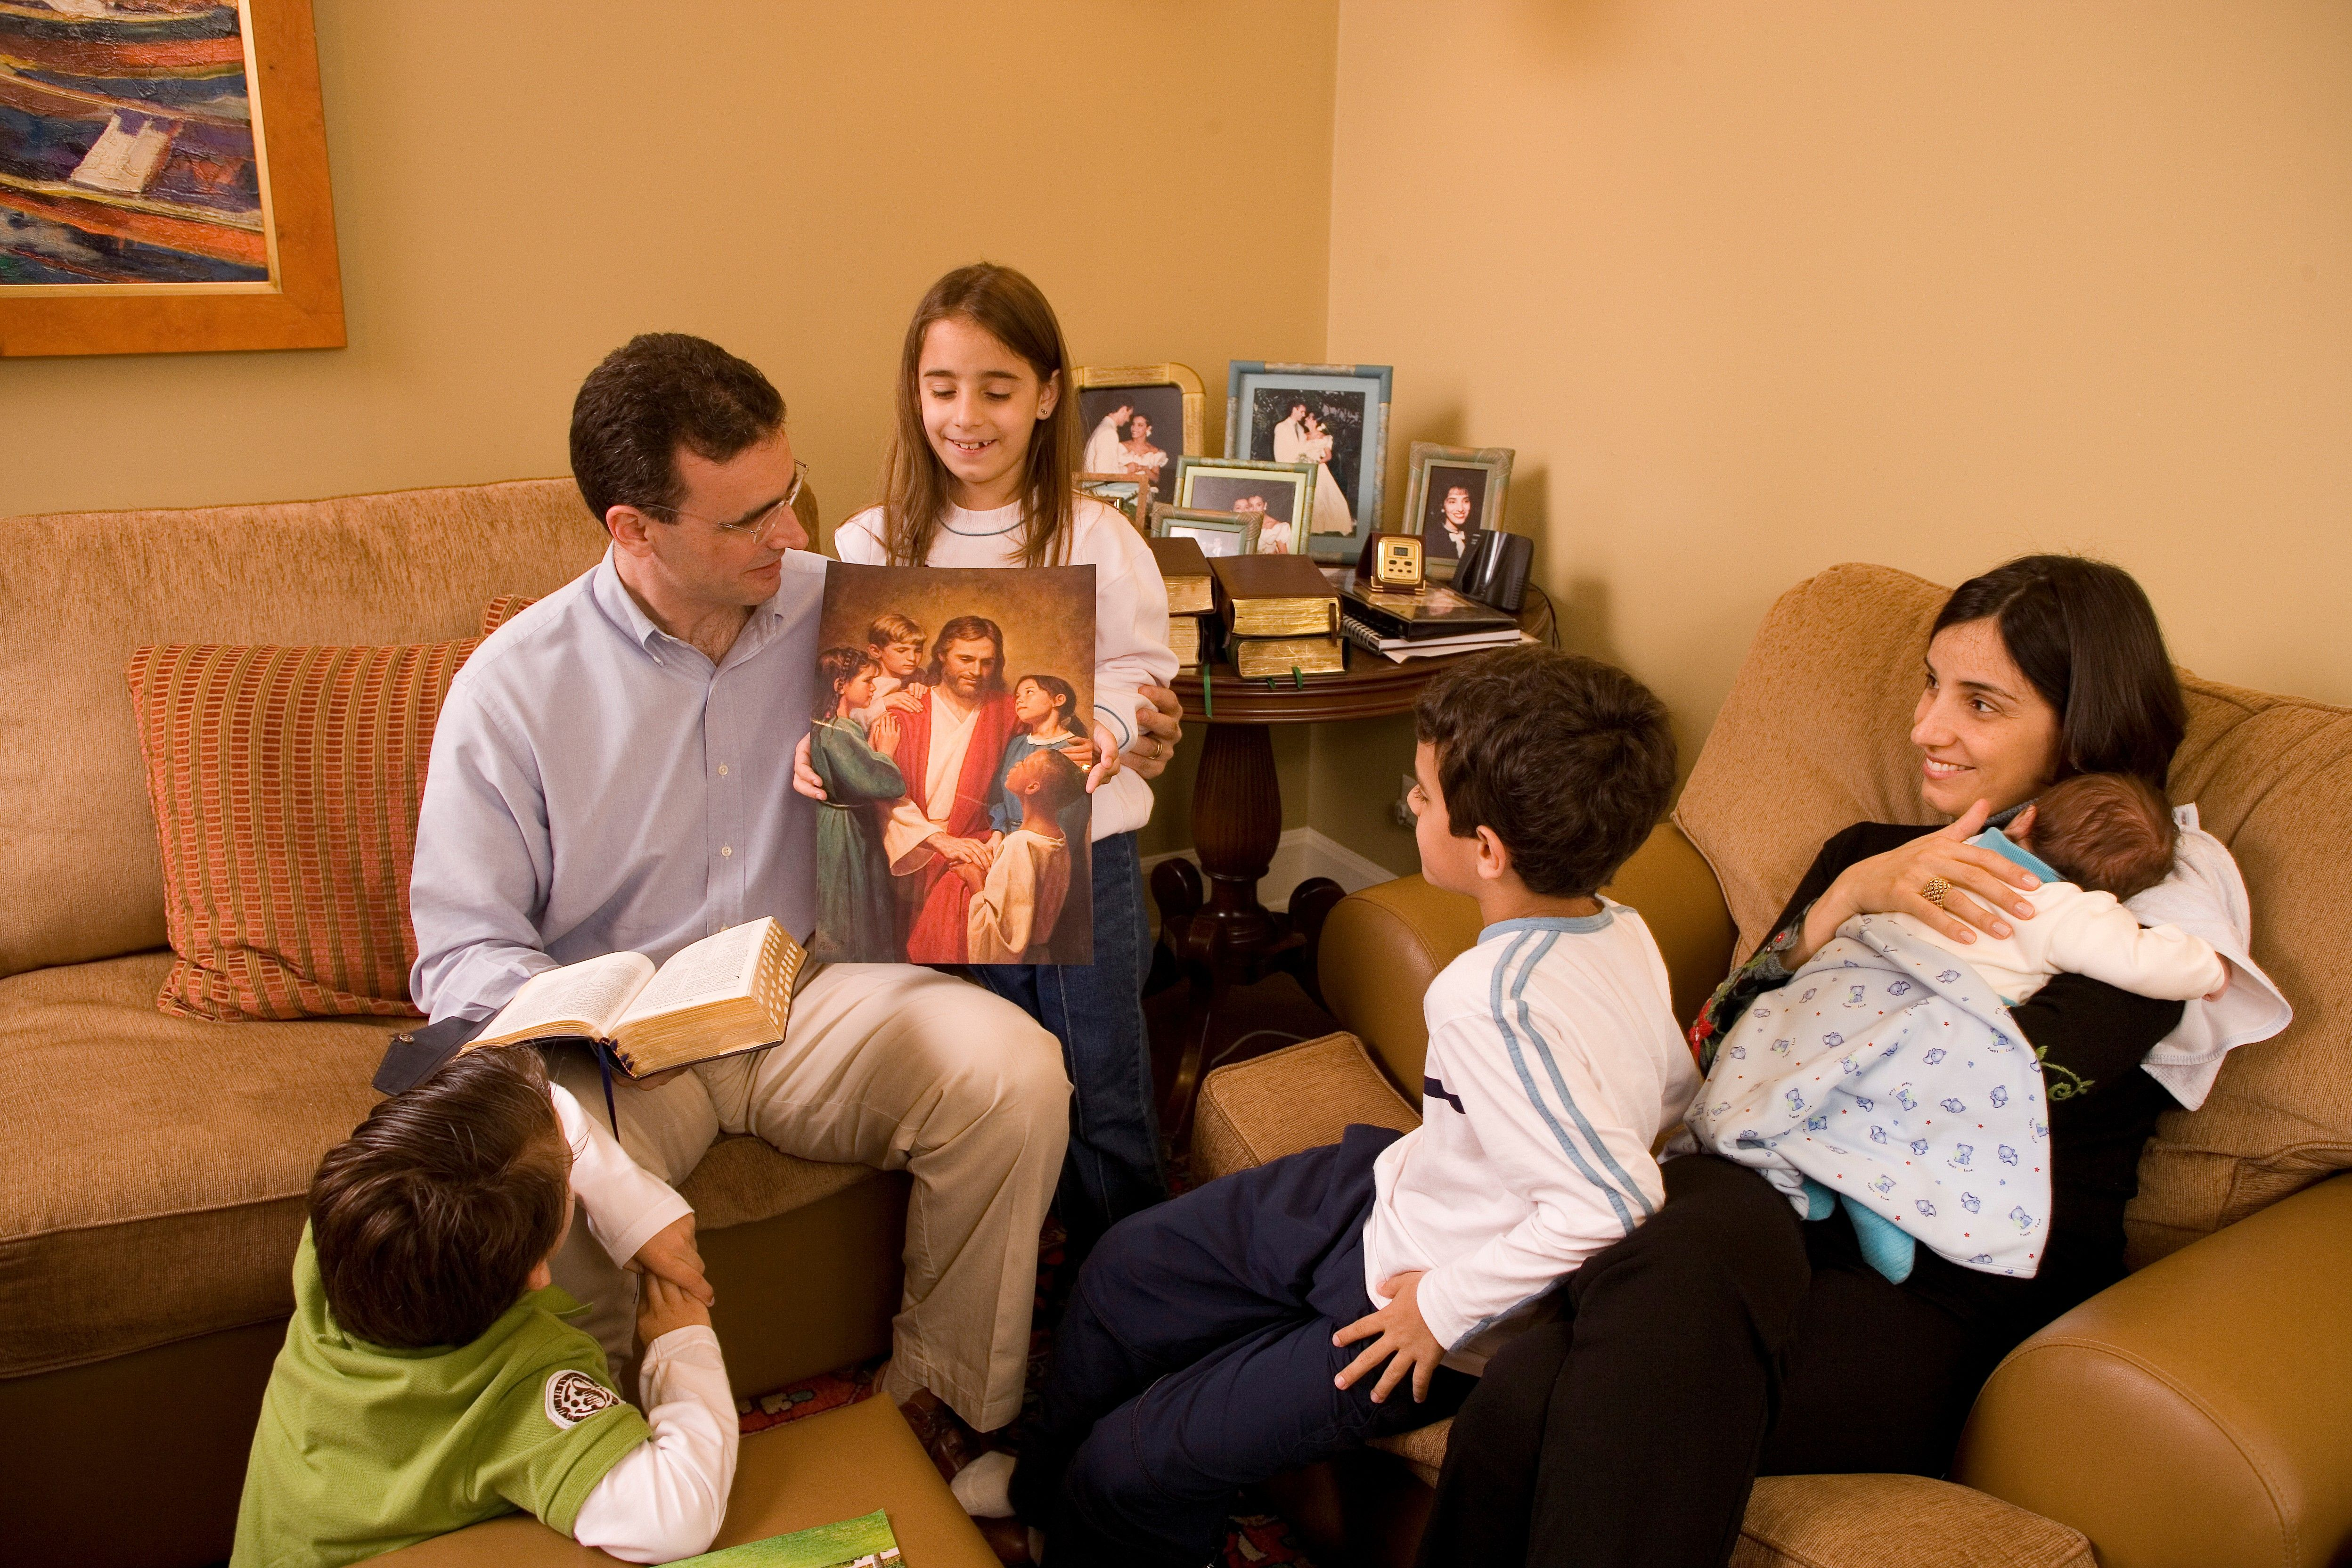 A family of six looking at an image of Christ with children during family home evening.